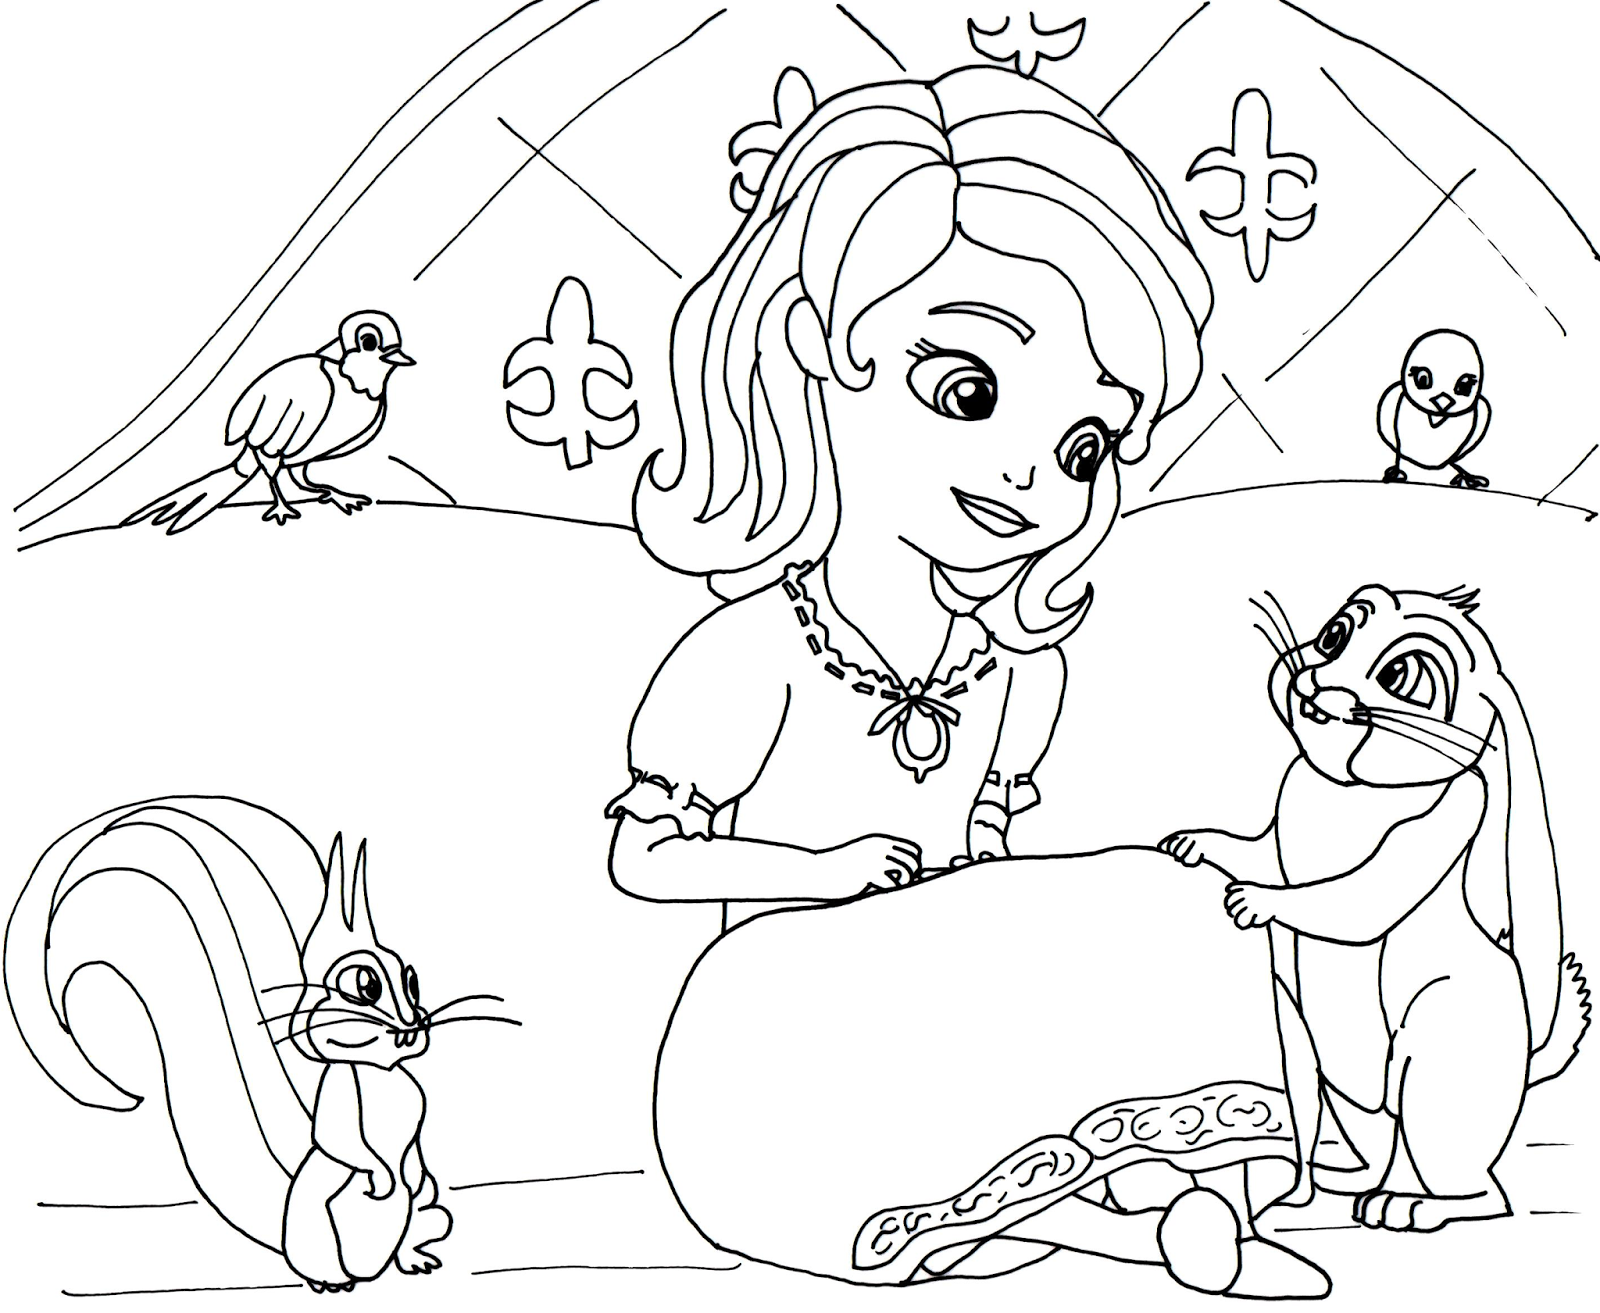 Lots of free and printable coloring pages for the small fans of sofia the first